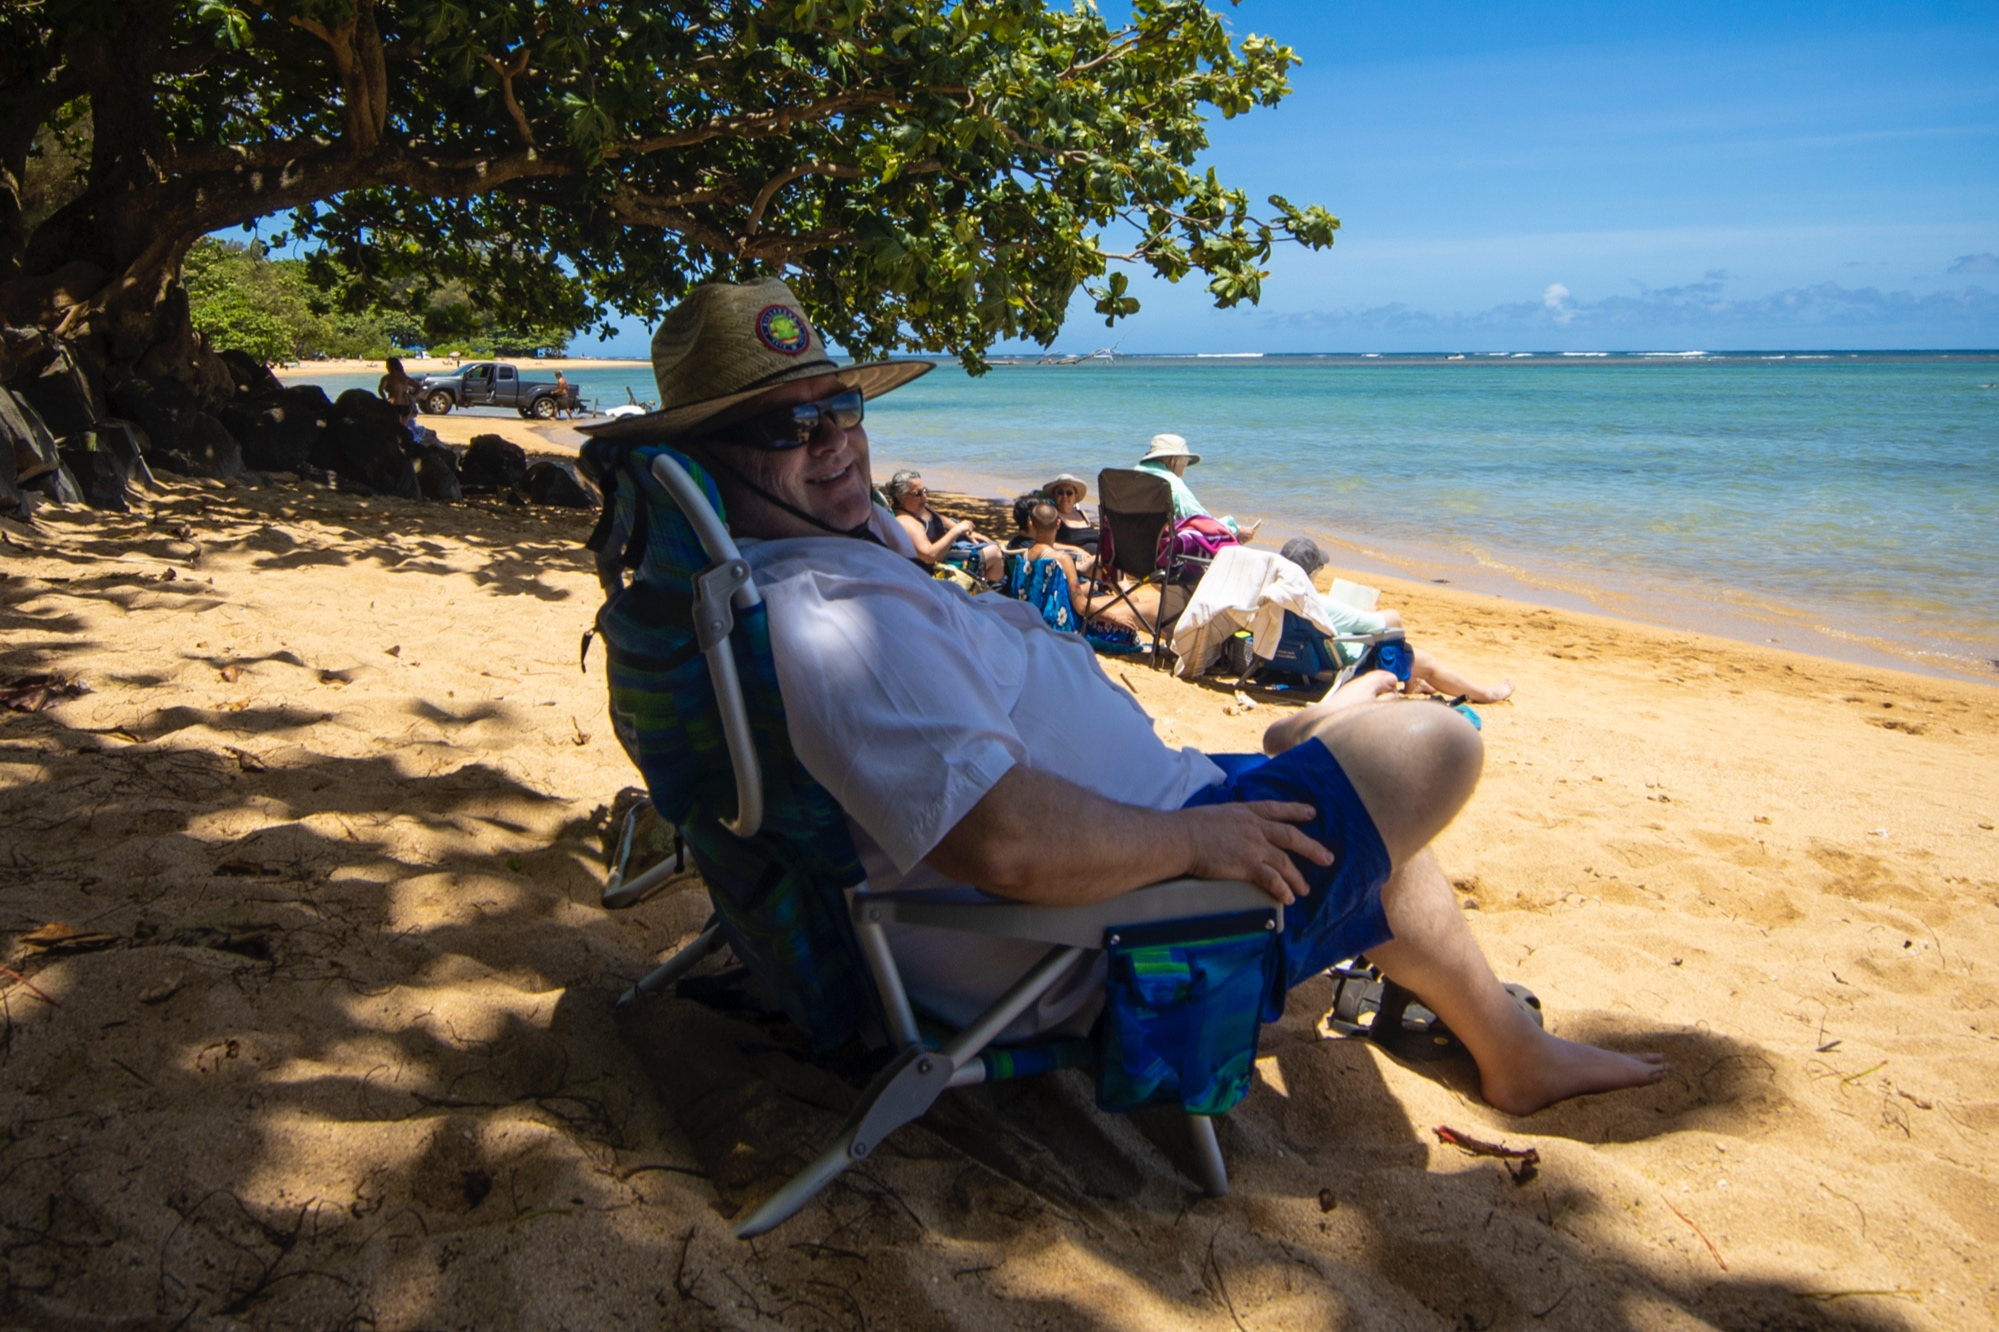 Dad lounging on the beach